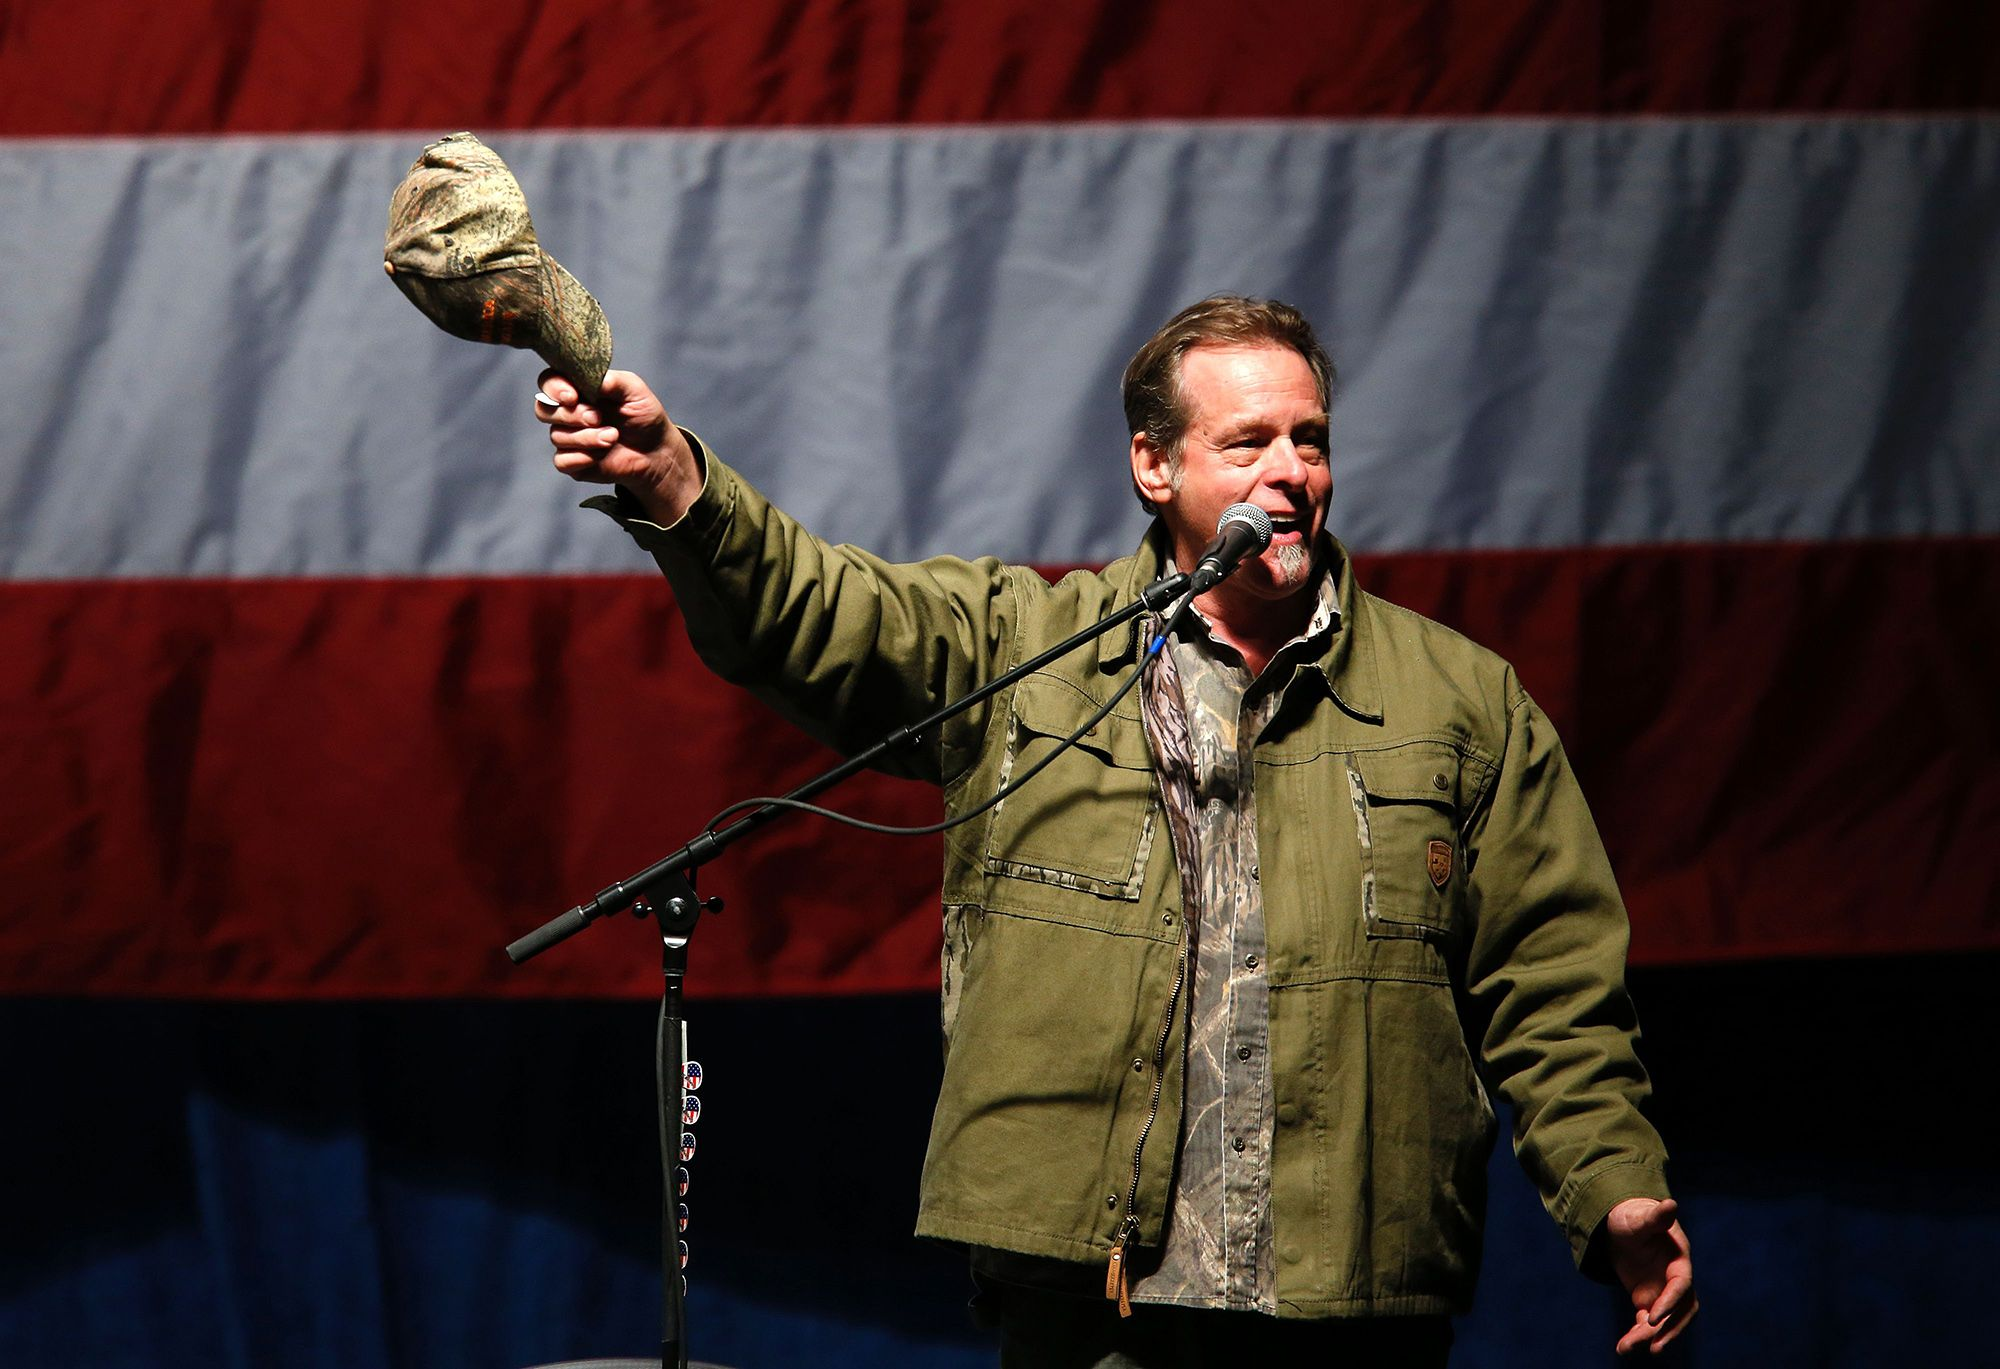 636283573329806930-ted-nugent-042117.jpg